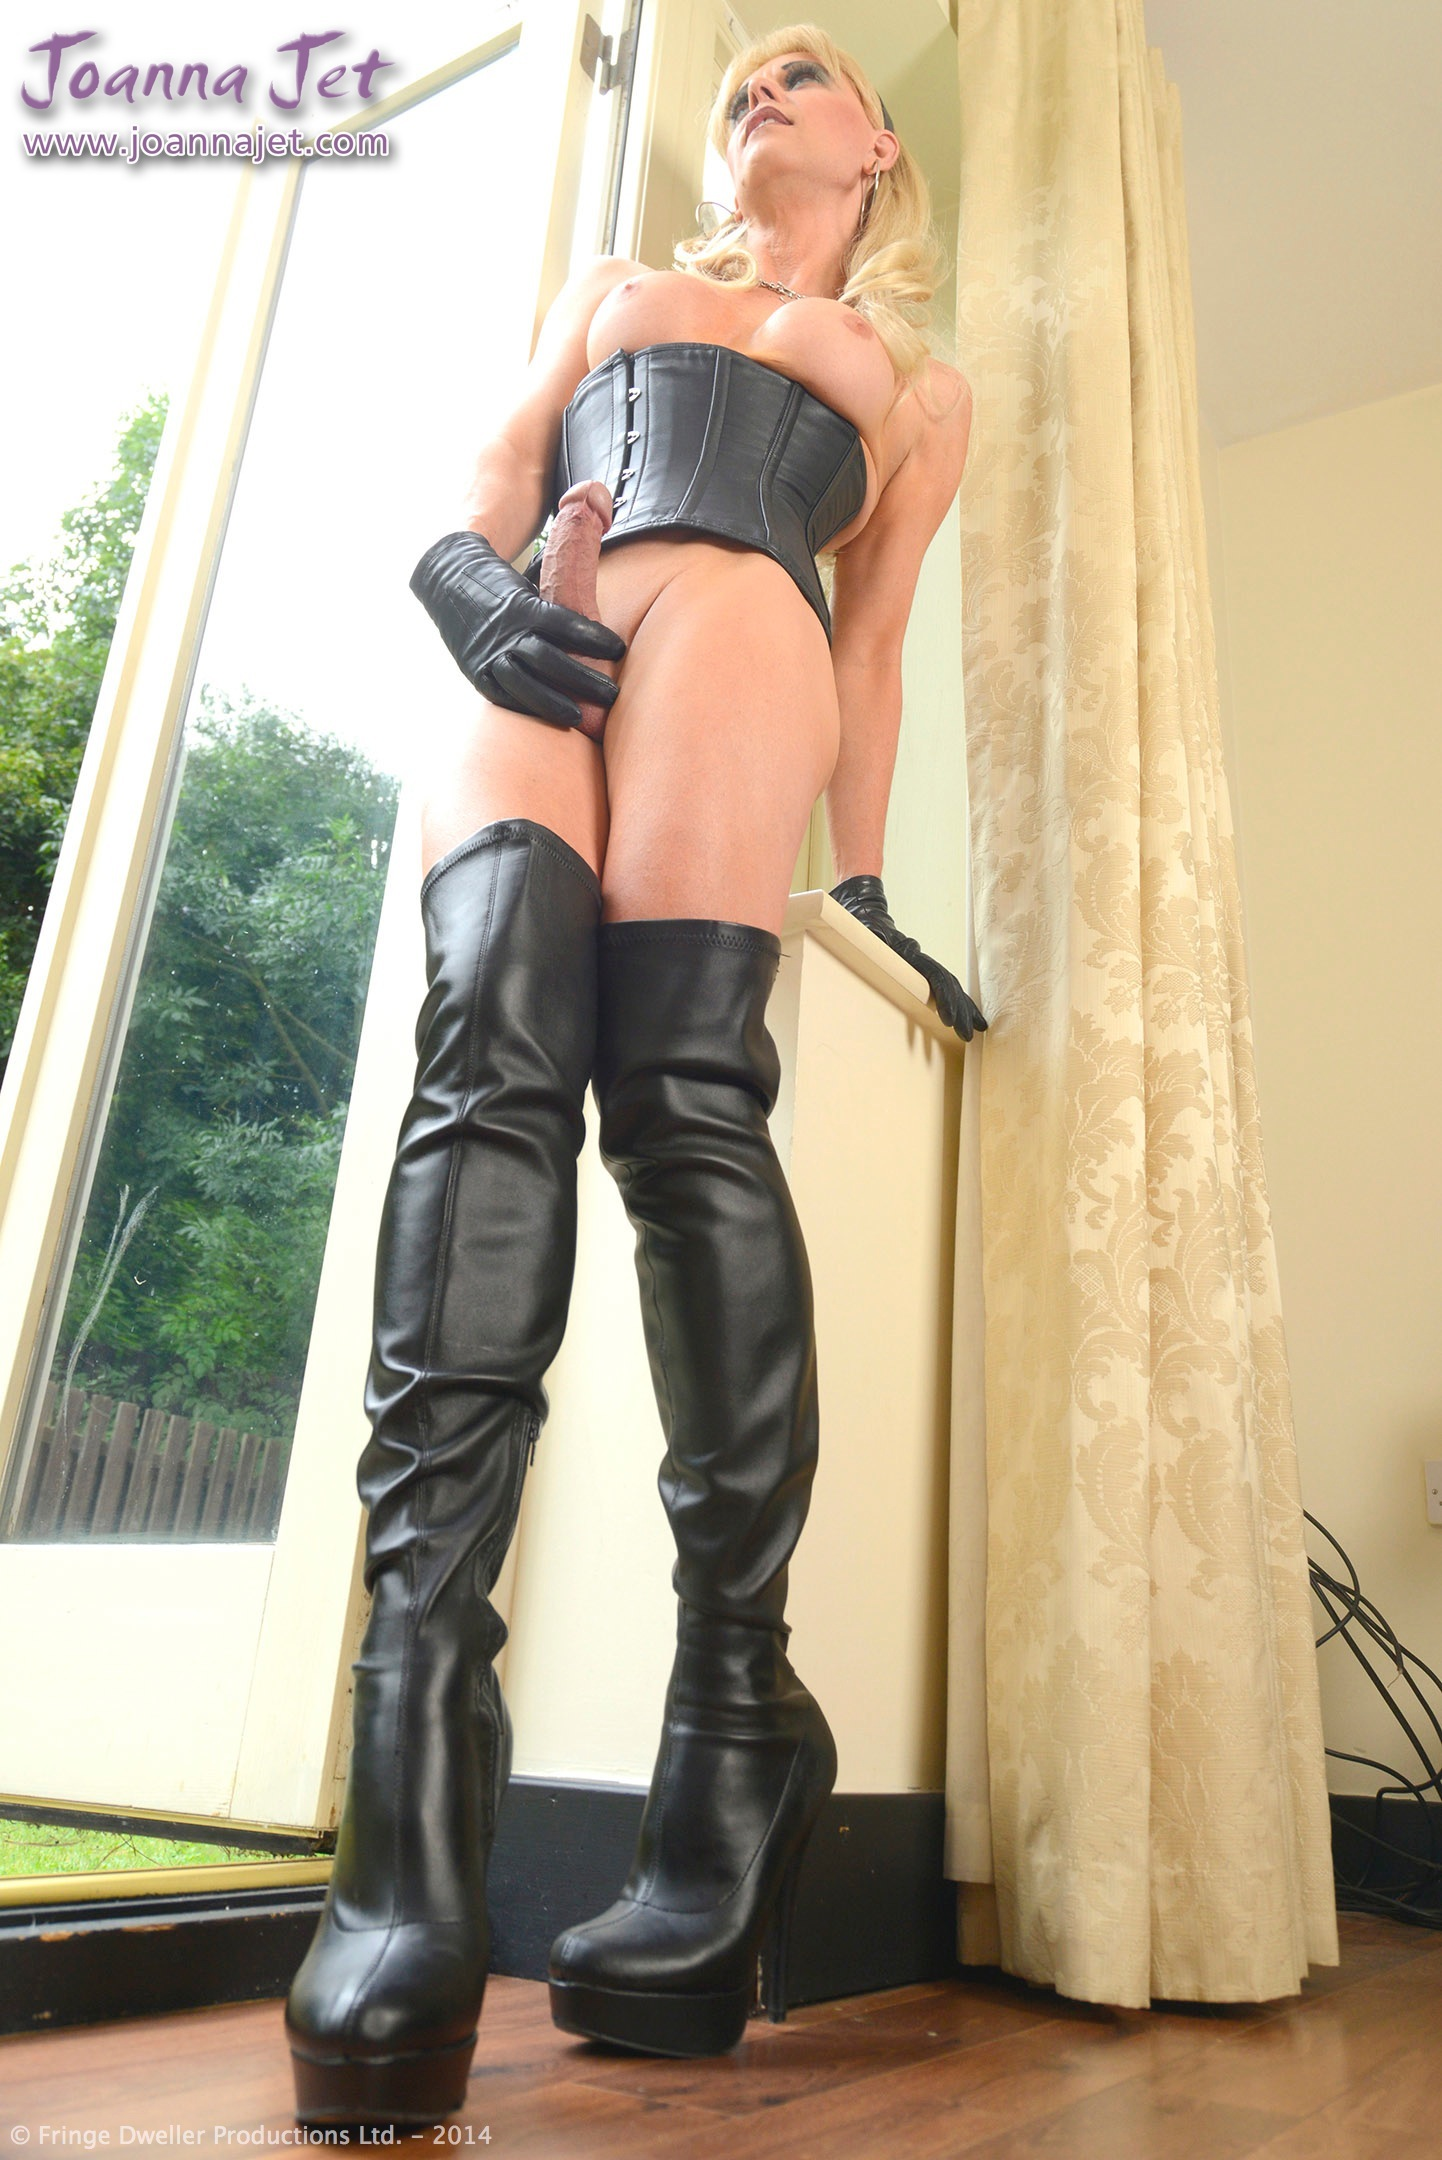 Leather boots transvestite porn